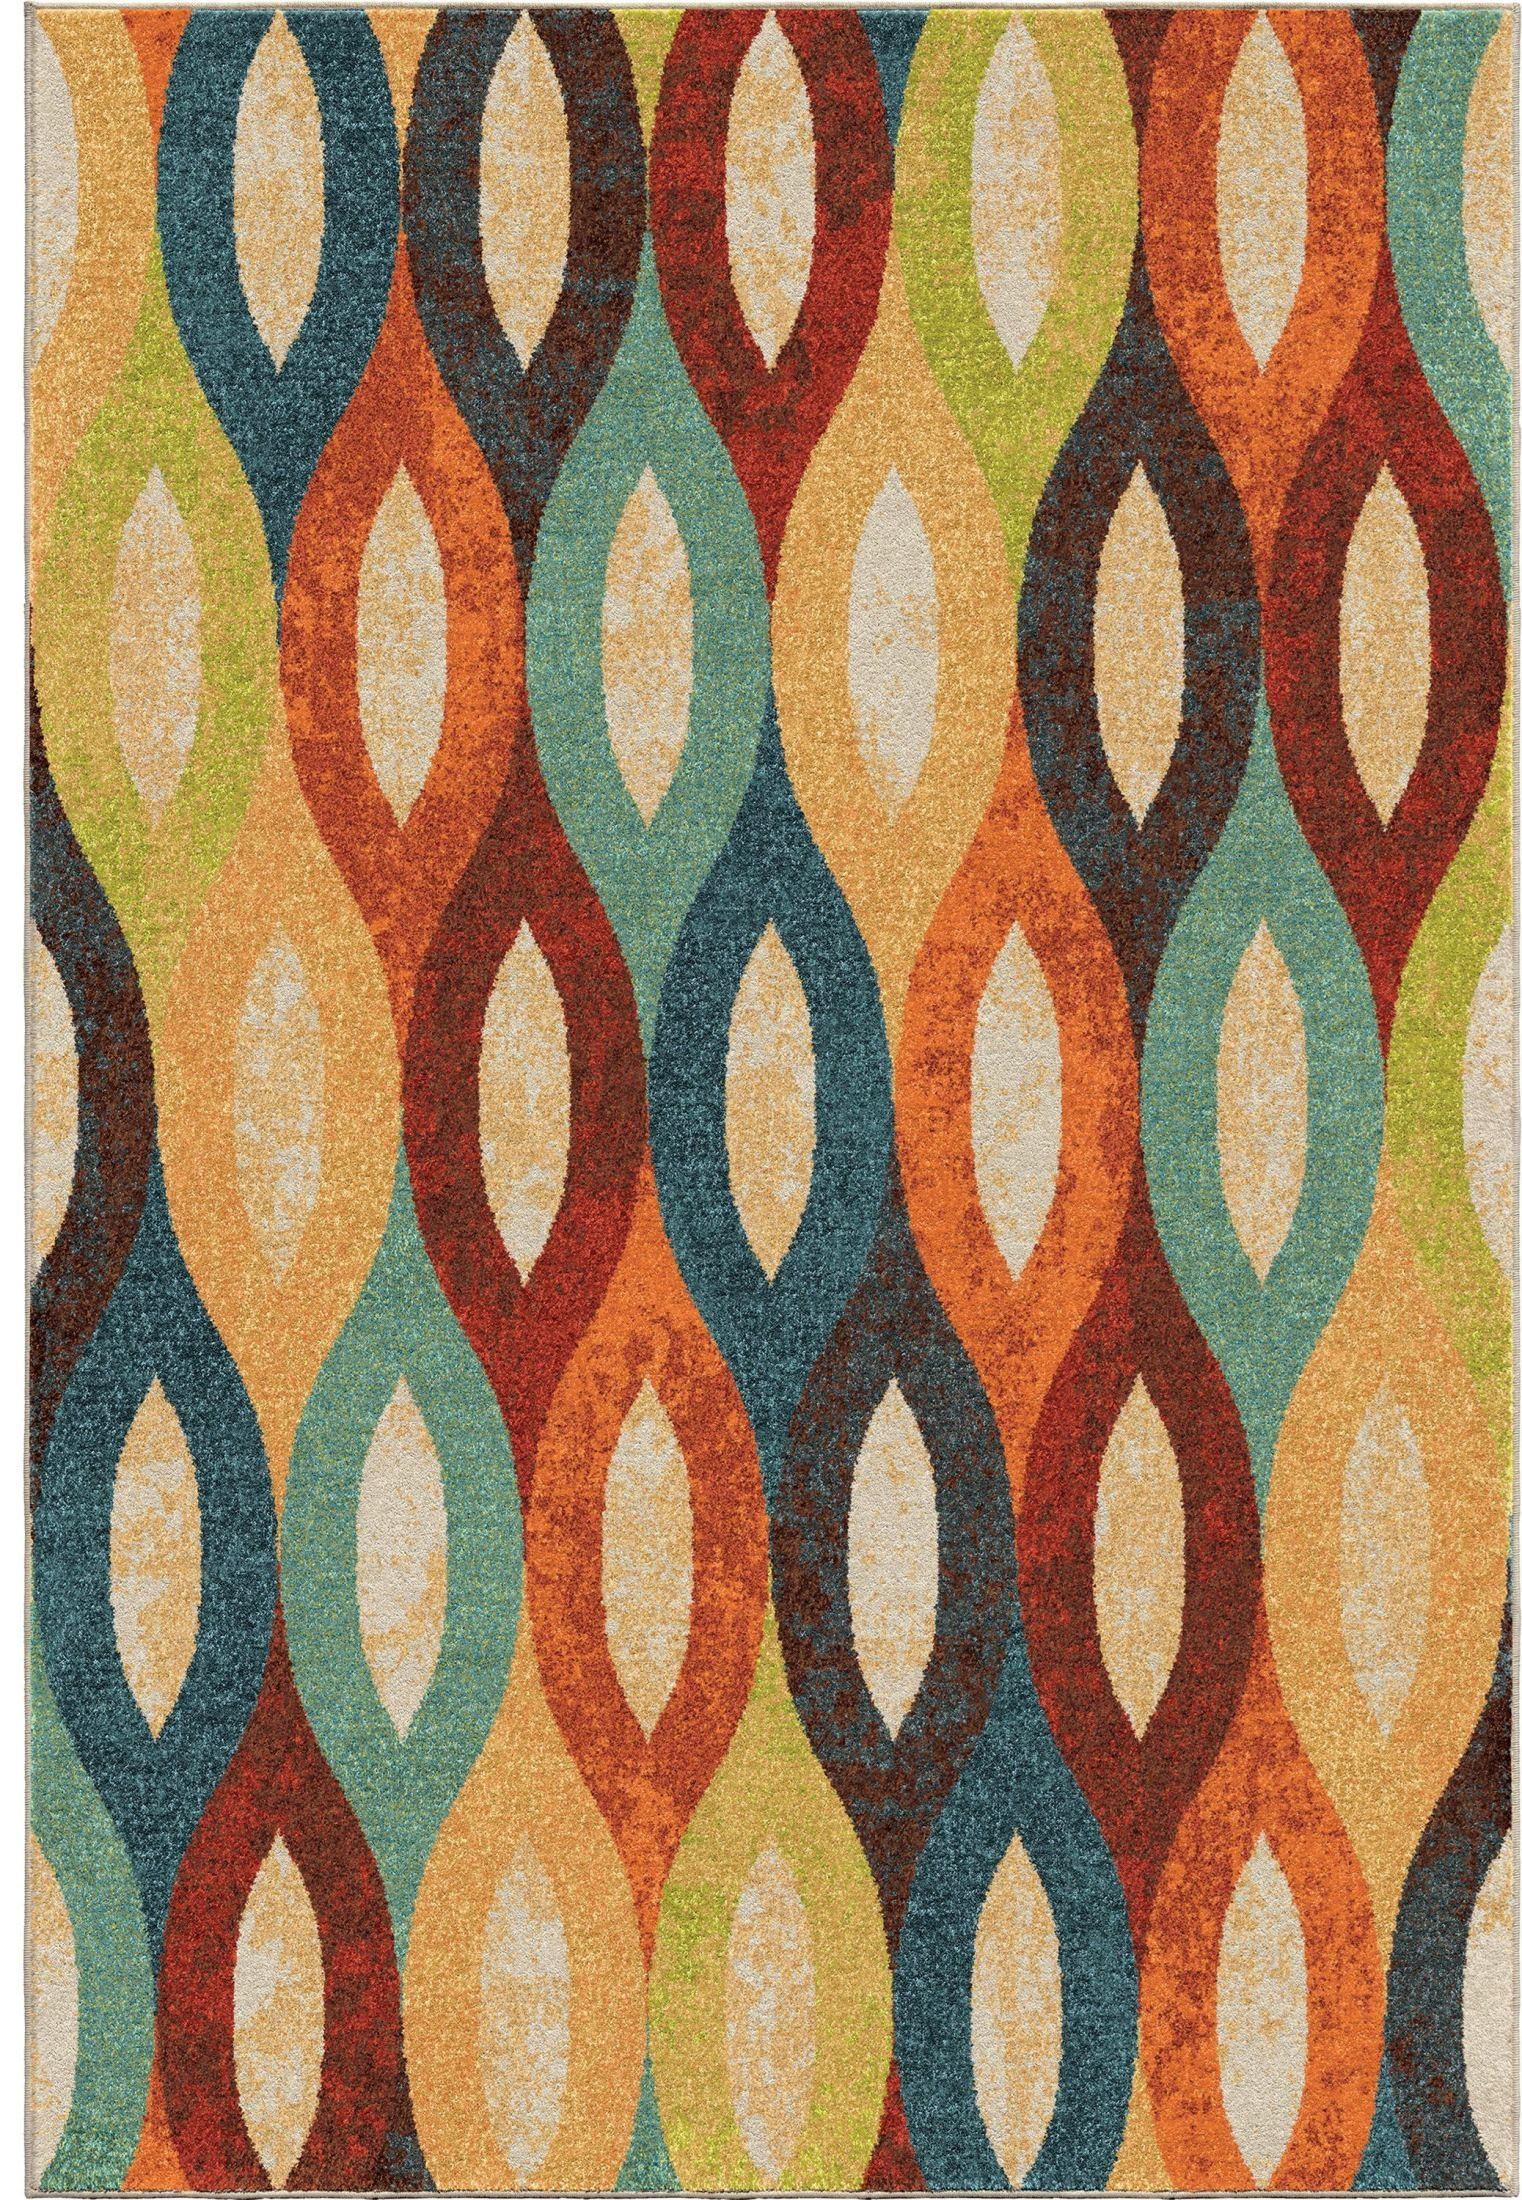 Bright Rugs Spoleto Bright Color Ovals Britwick Multi Large Area Rug